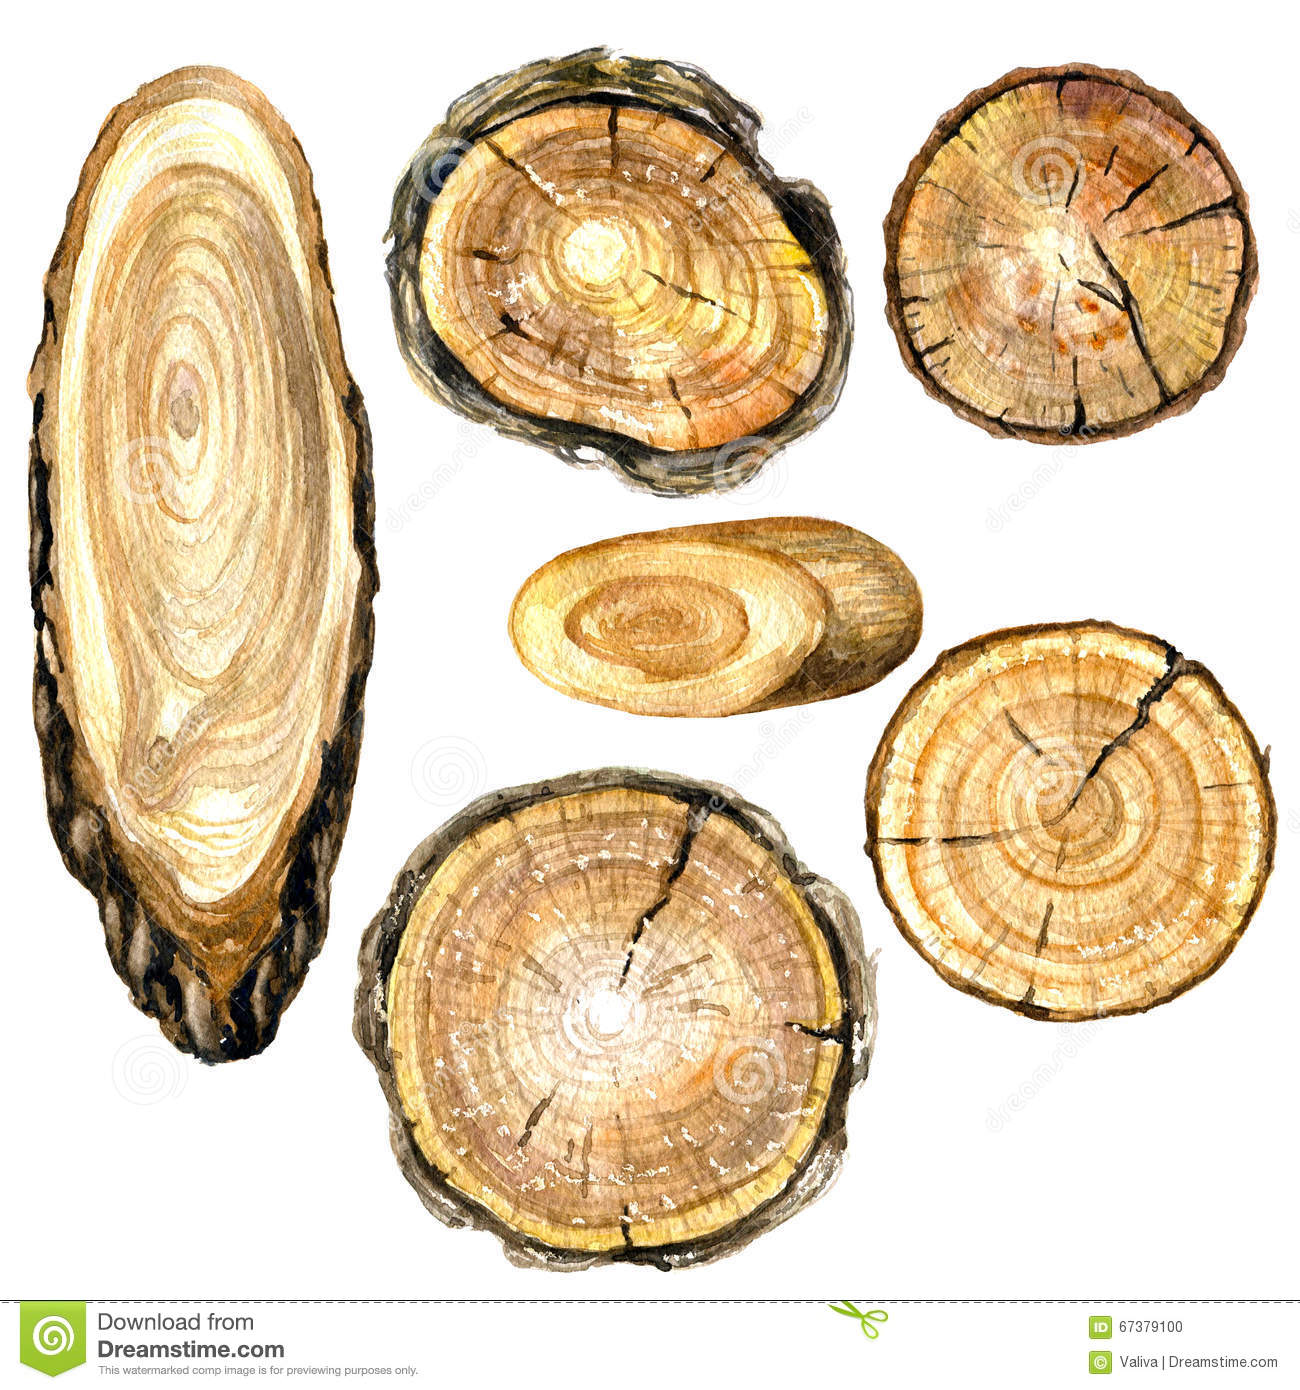 Watercolor cross section of tree trunk.